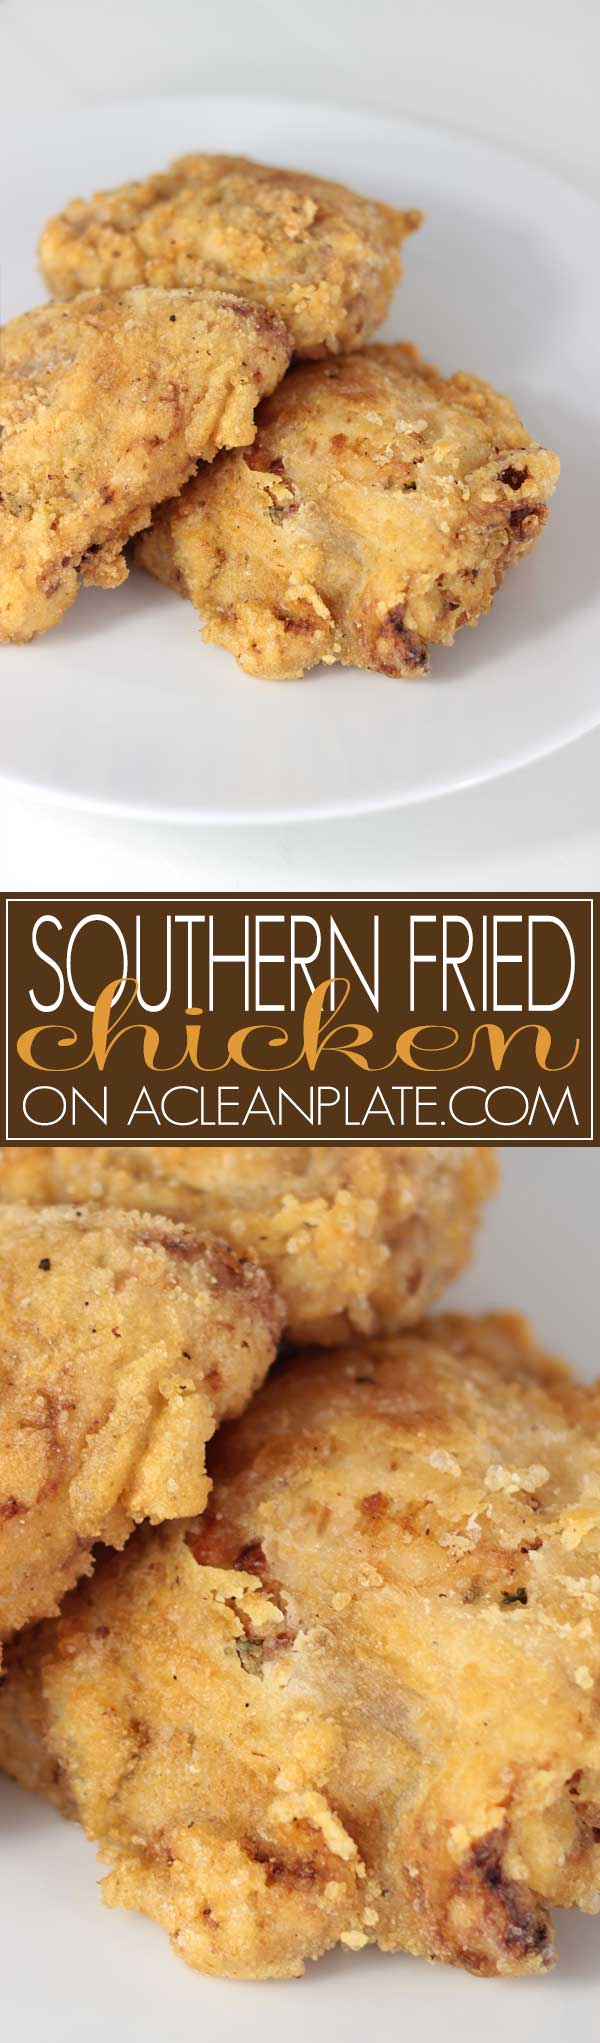 Southern Fried Chicken recipe from Paleo Eats on acleanplate.com